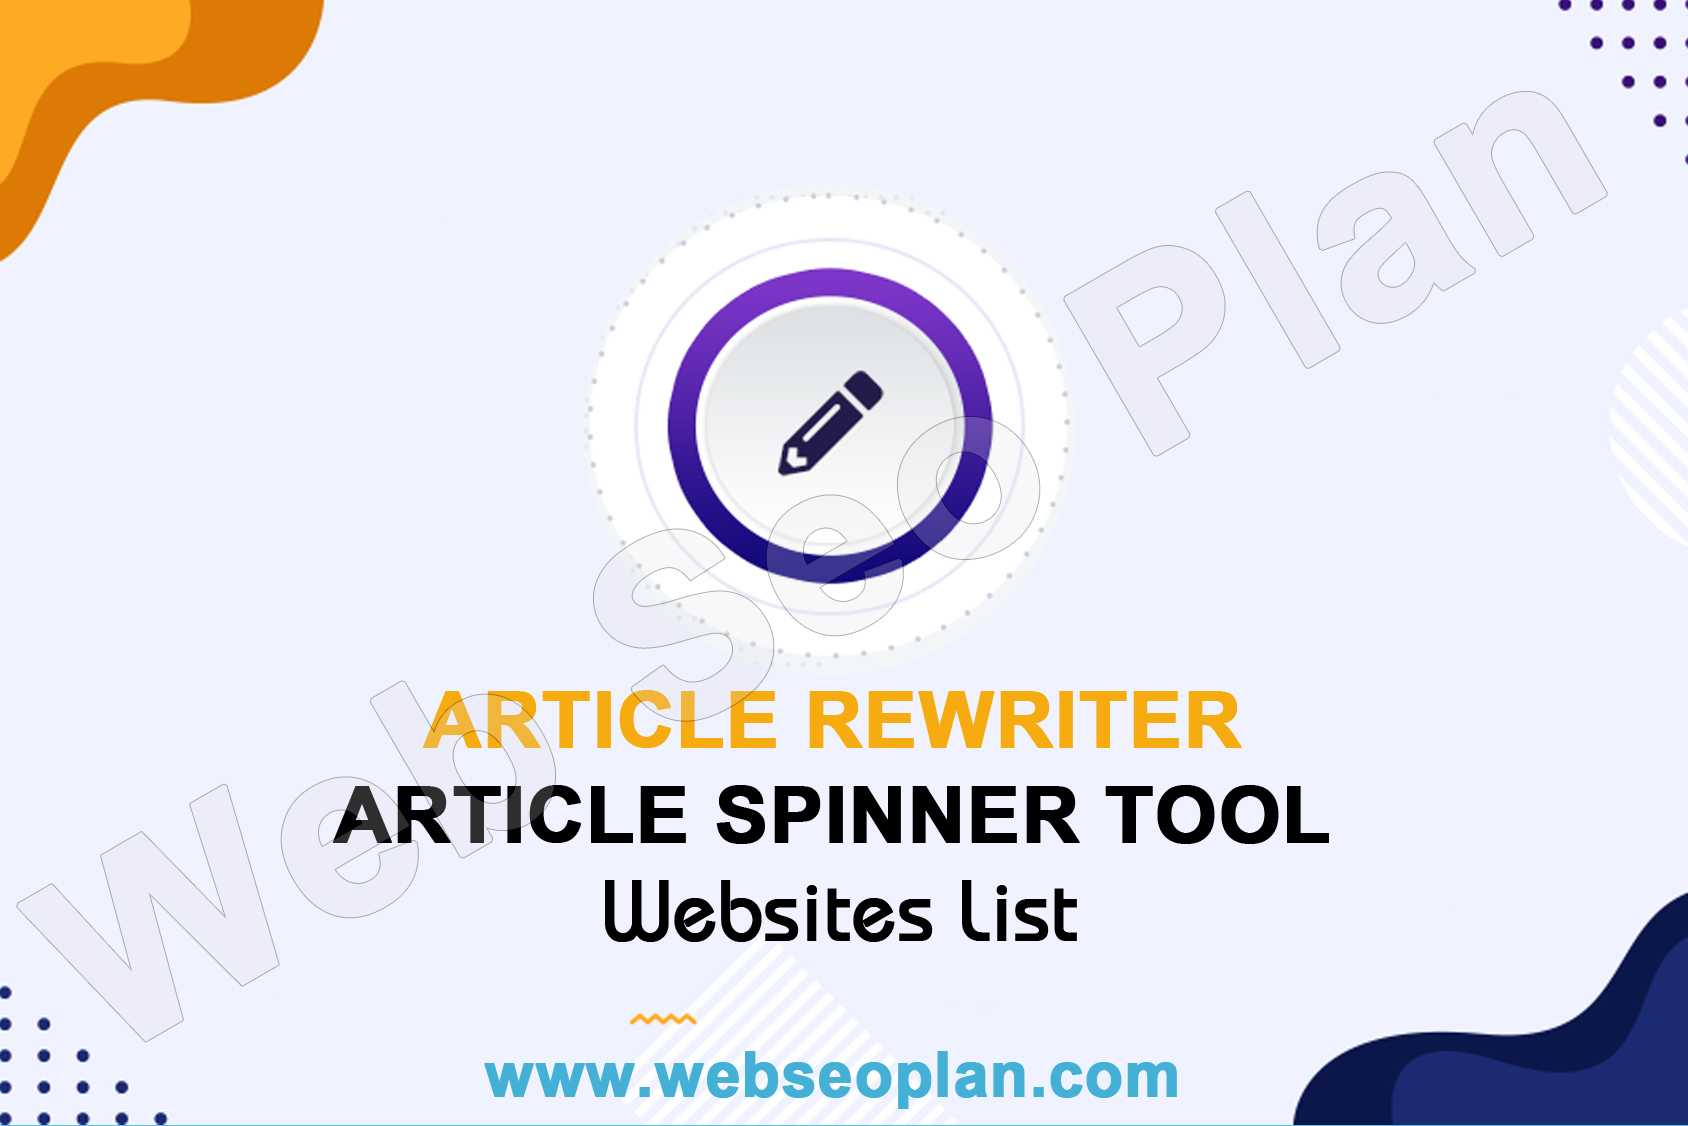 Article Rewriter And Article Spinner Tool